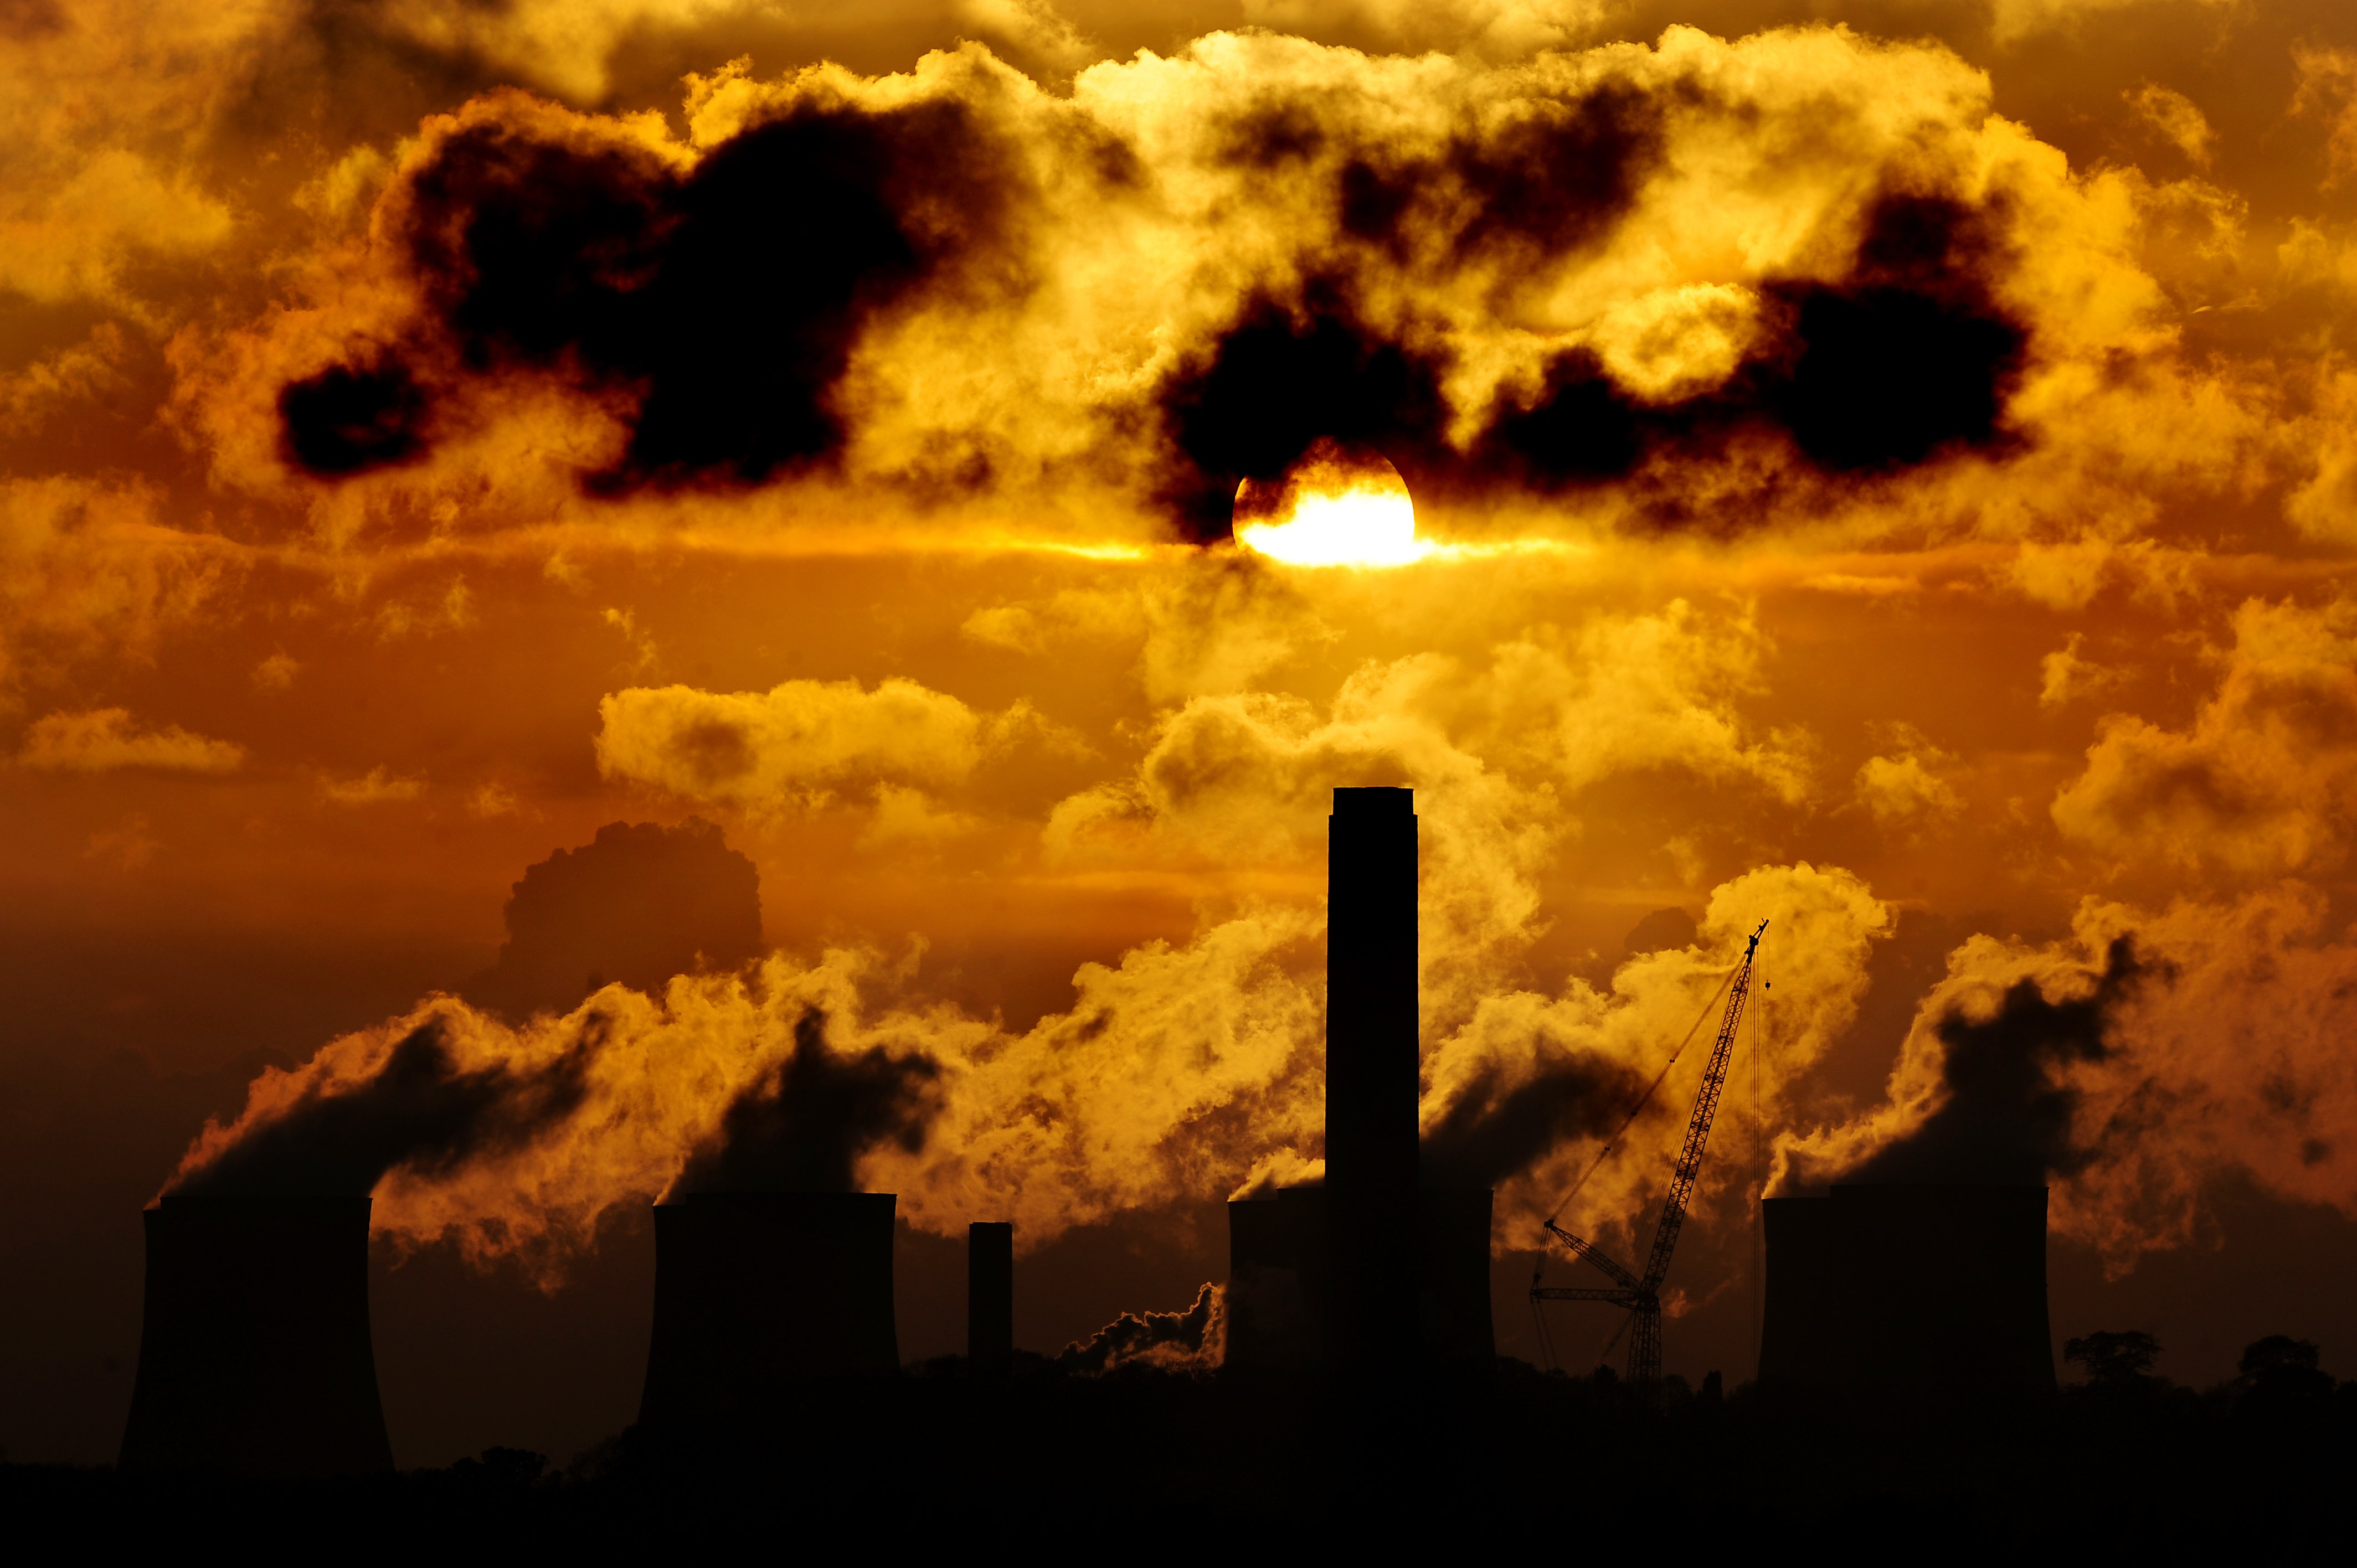 Levels of carbon dioxide at record highs despite lockdown, experts warn